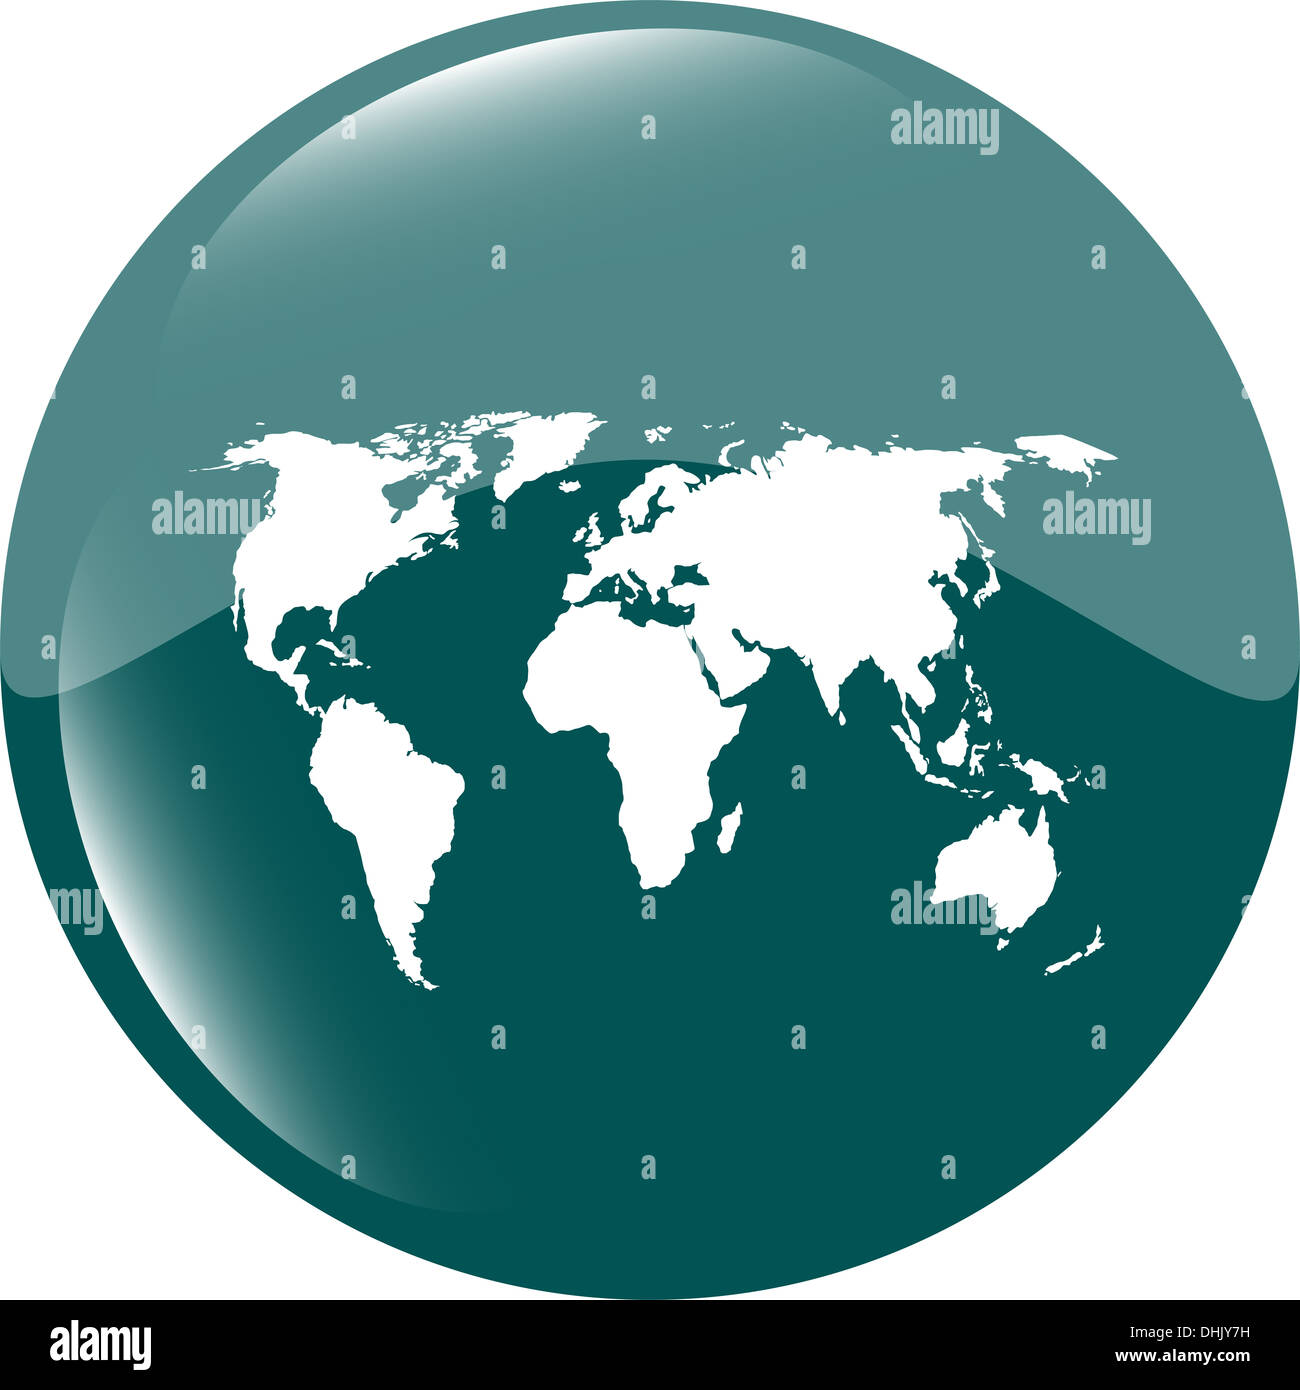 Globe icon earth world map on web button stock photo 62496773 alamy globe icon earth world map on web button gumiabroncs Gallery